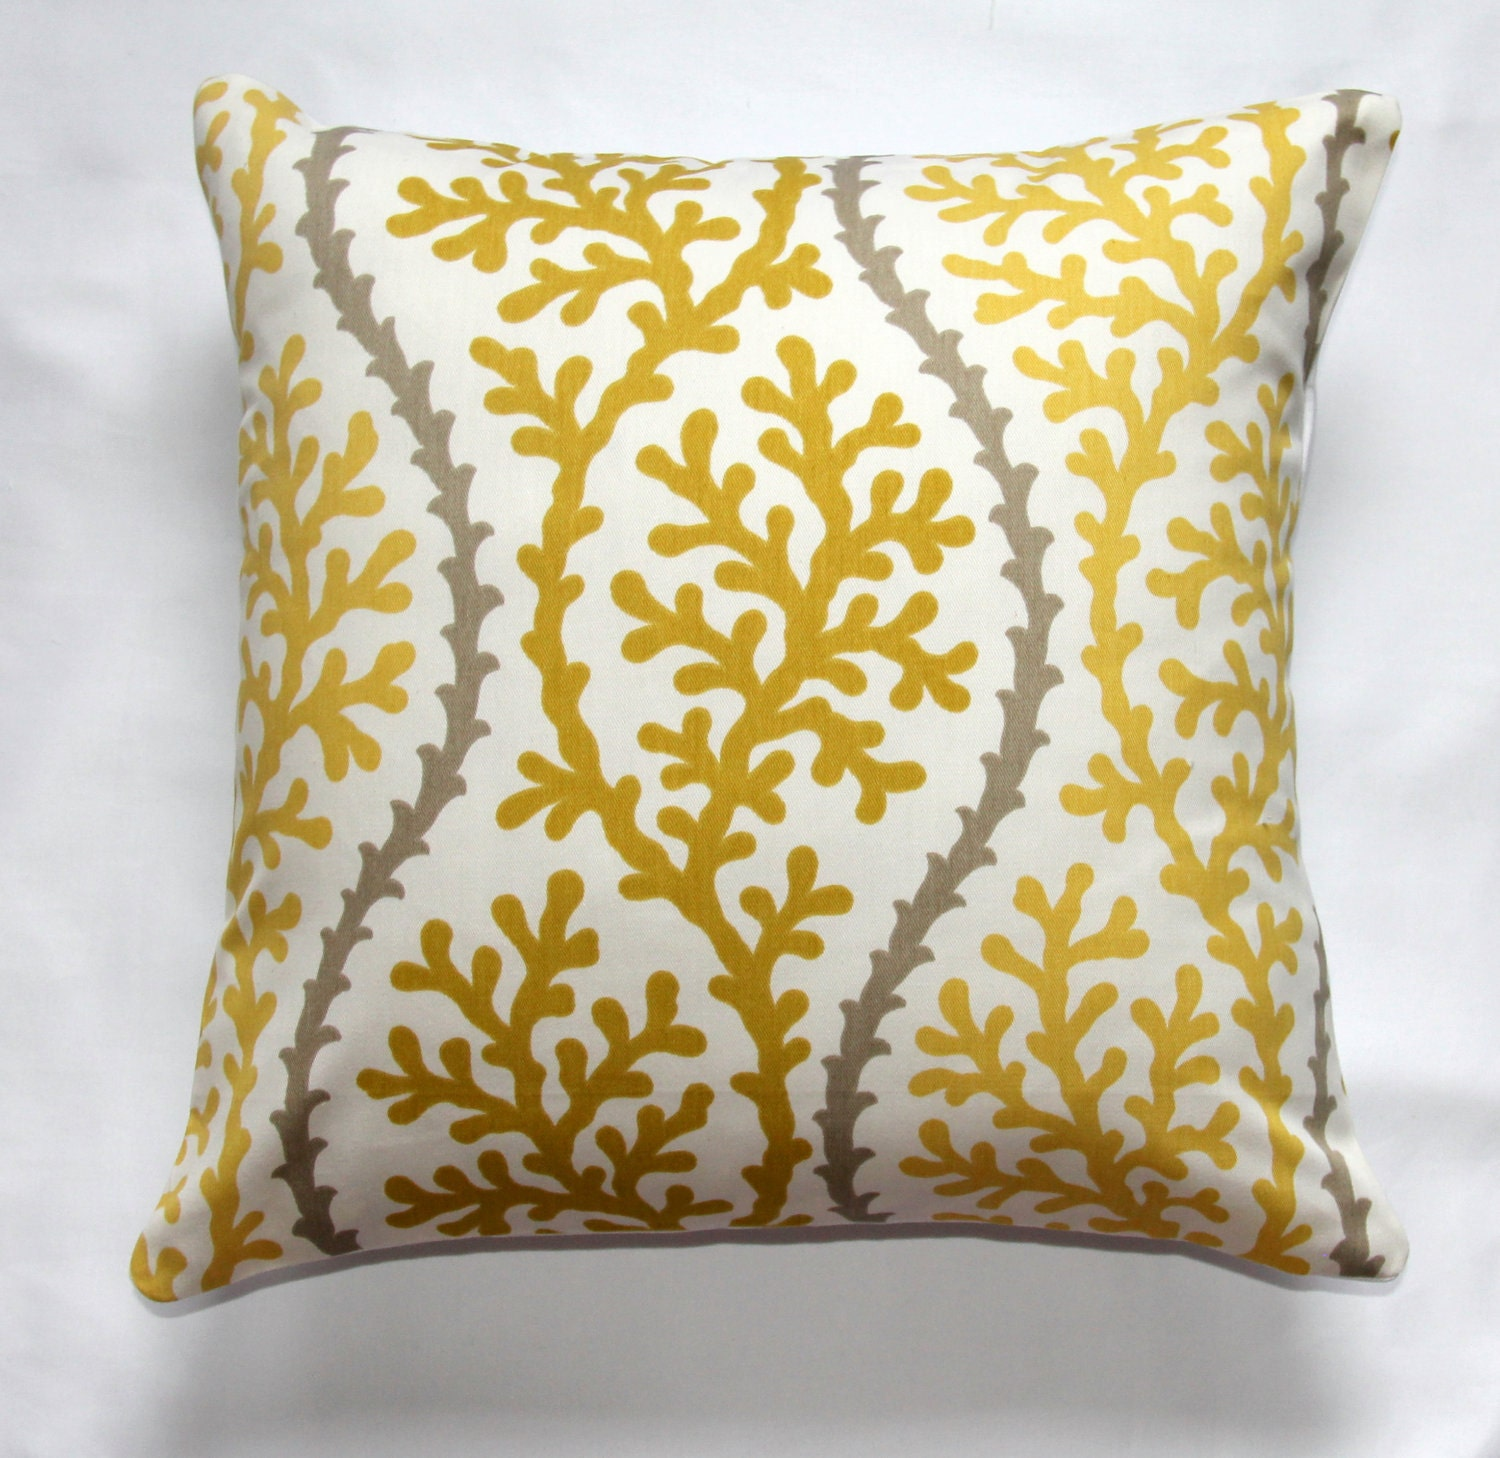 Decorative Pillows Images : Pillows decorative pillow accent pillow throw pillow designer